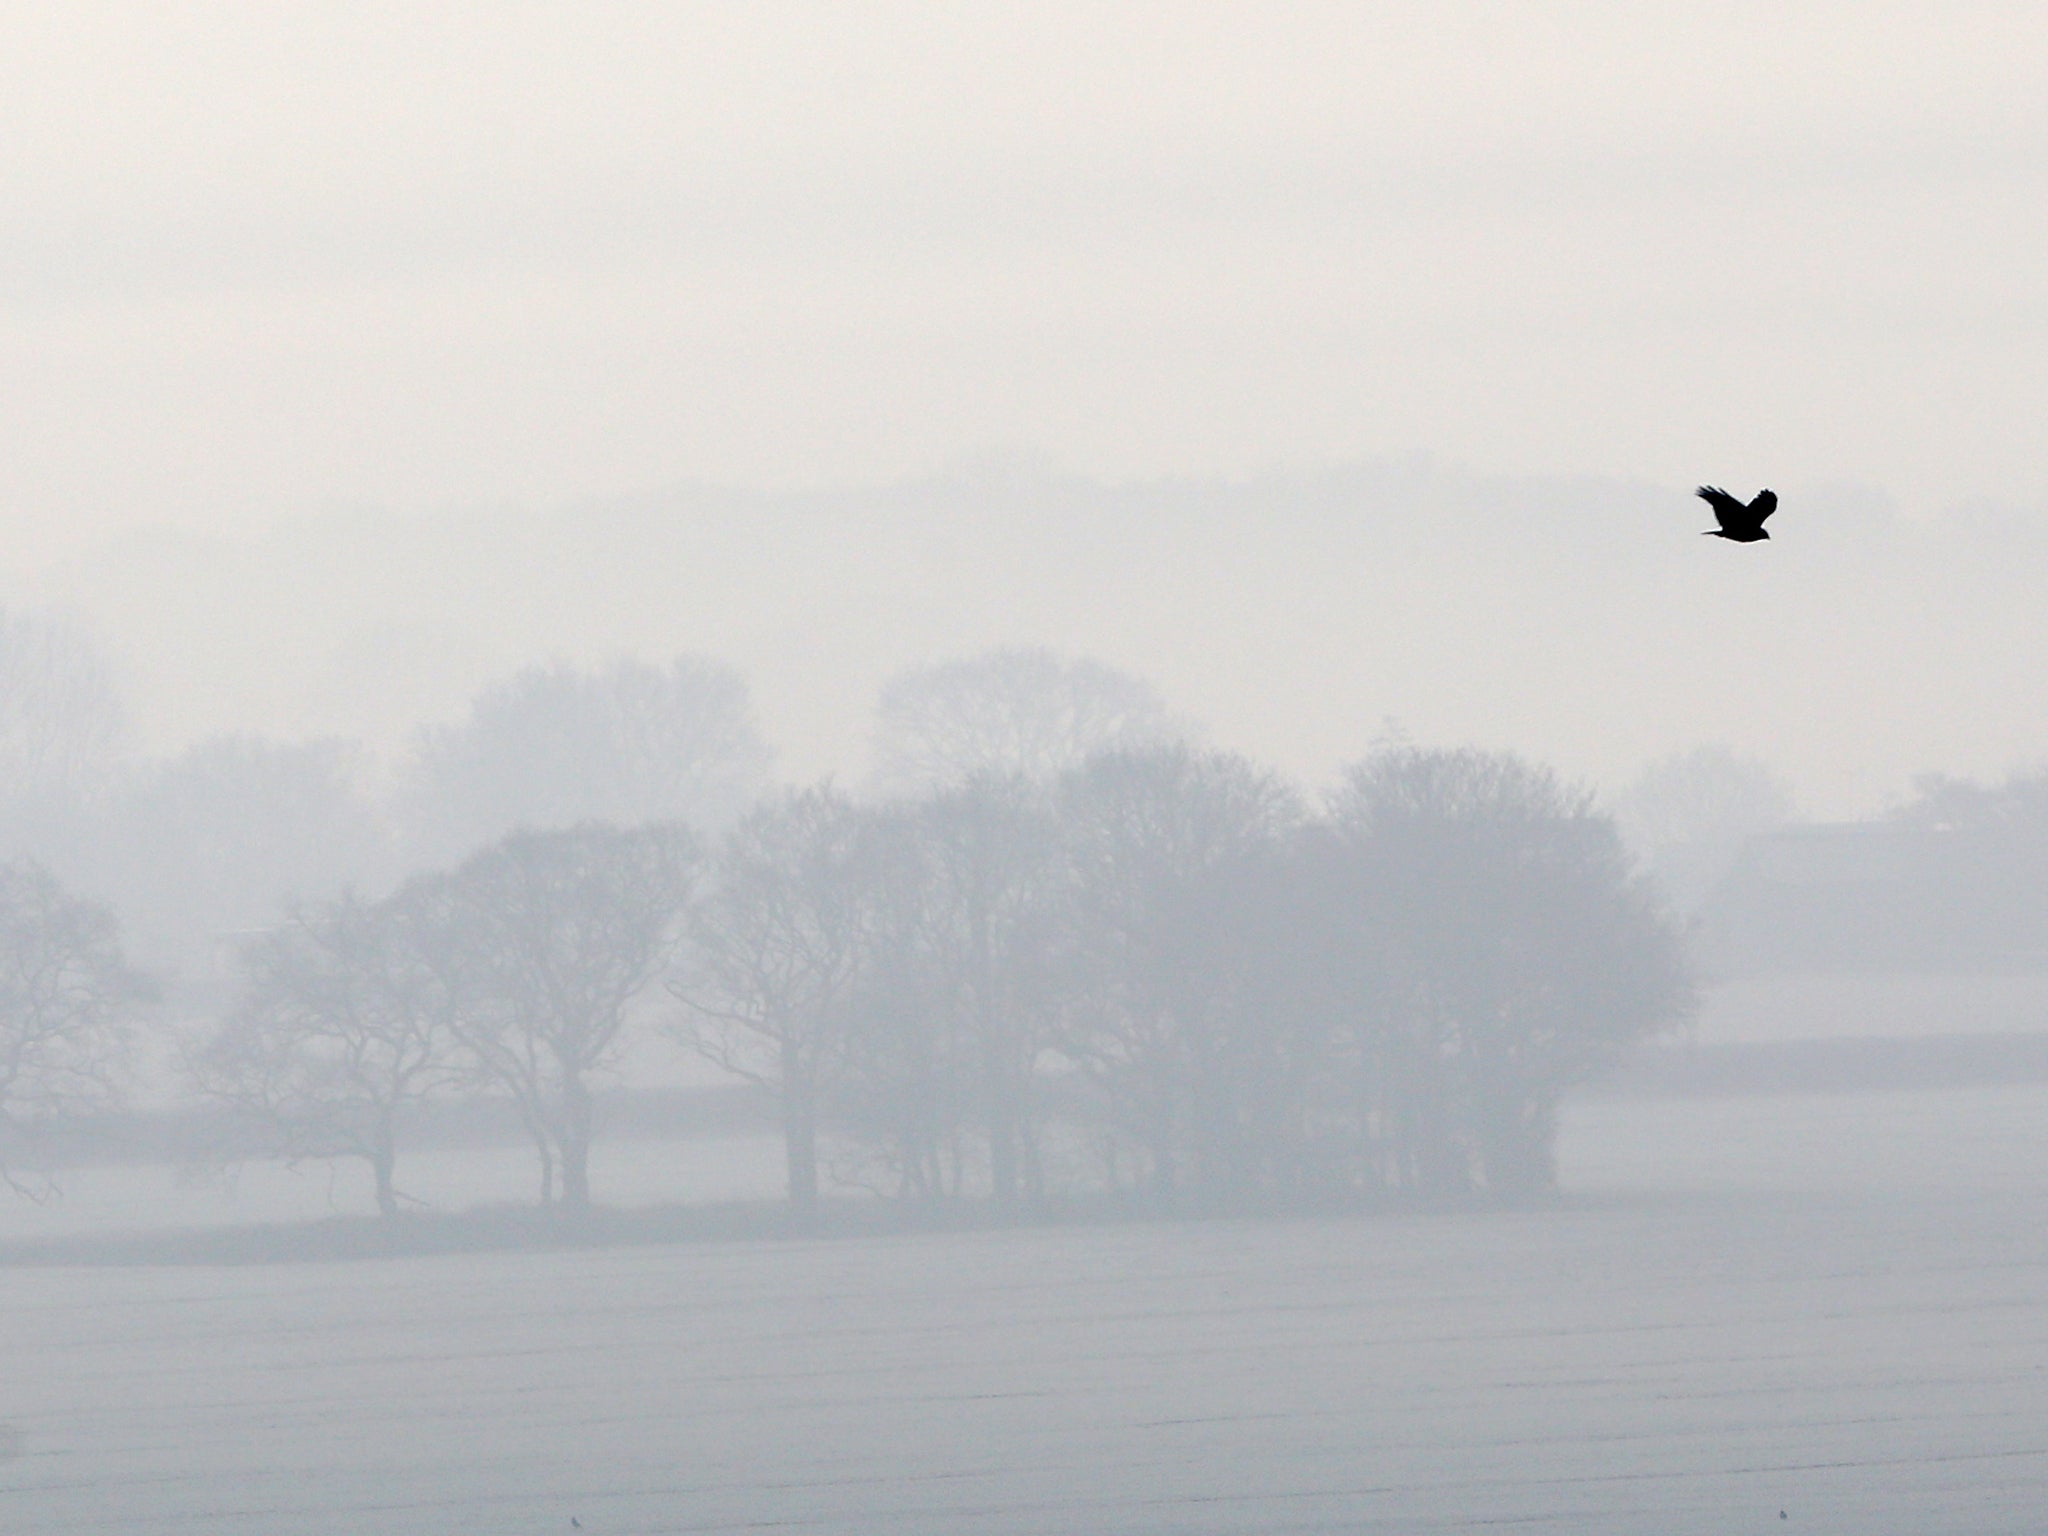 UK weather: Freezing fog causes rush hour travel chaos and flight delays